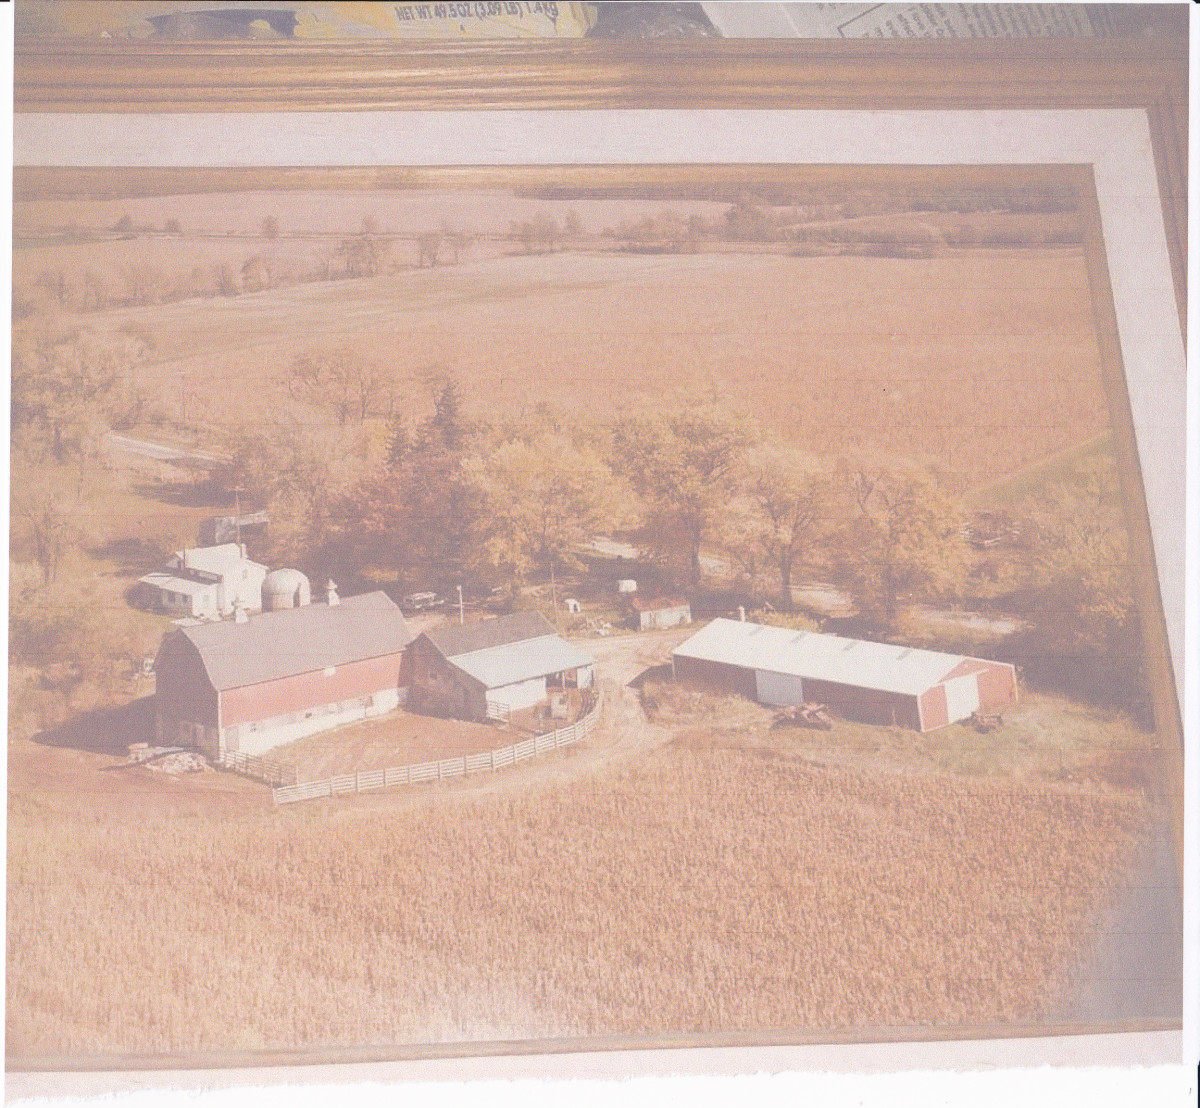 Dad purchased our farm in 1957.  This picture was taken probably in the mid-70s.